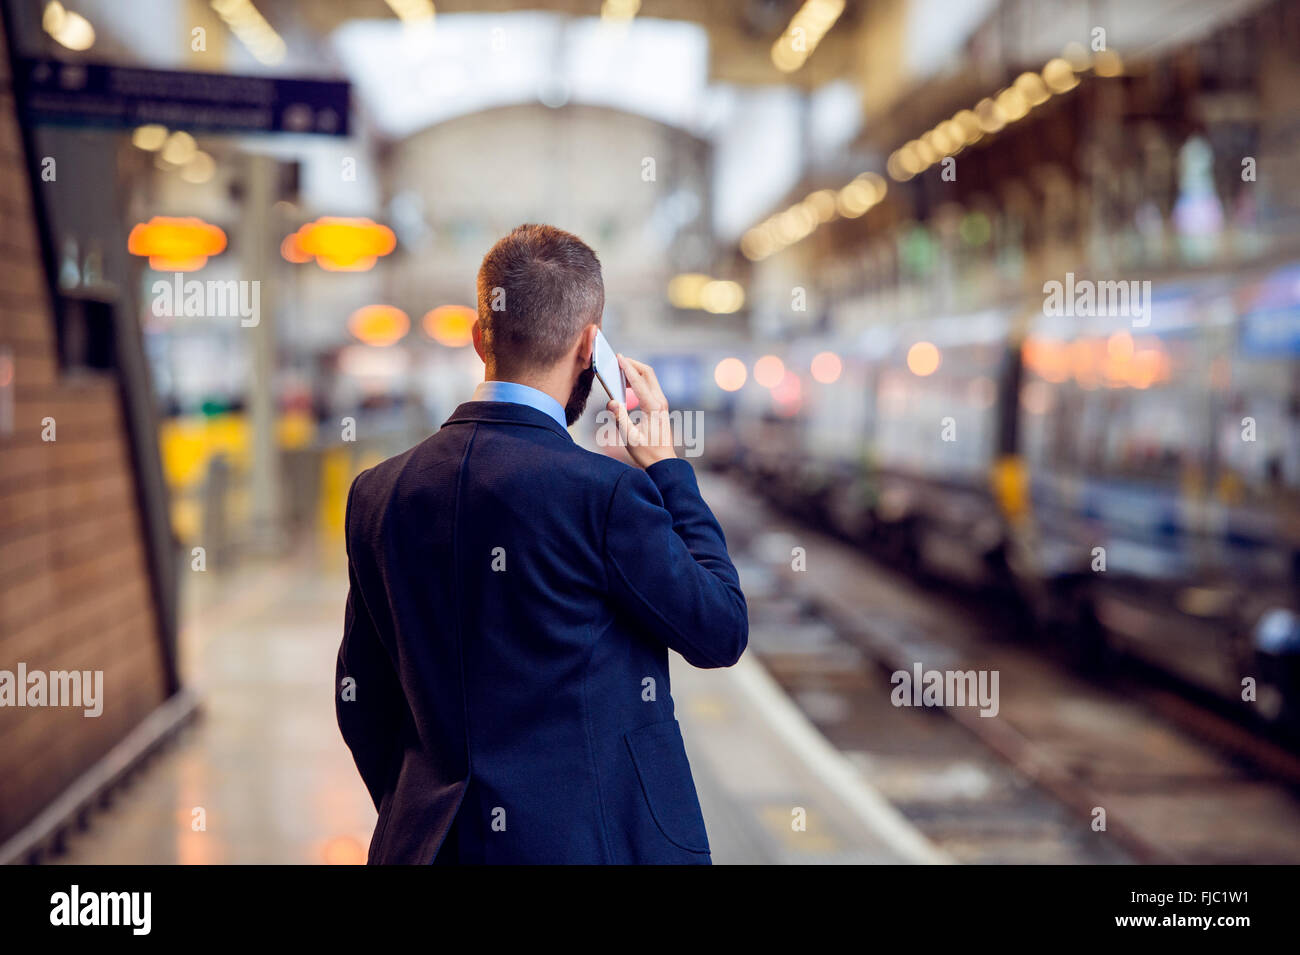 Businessman with smartphone, making a phone call, underground pl - Stock Image